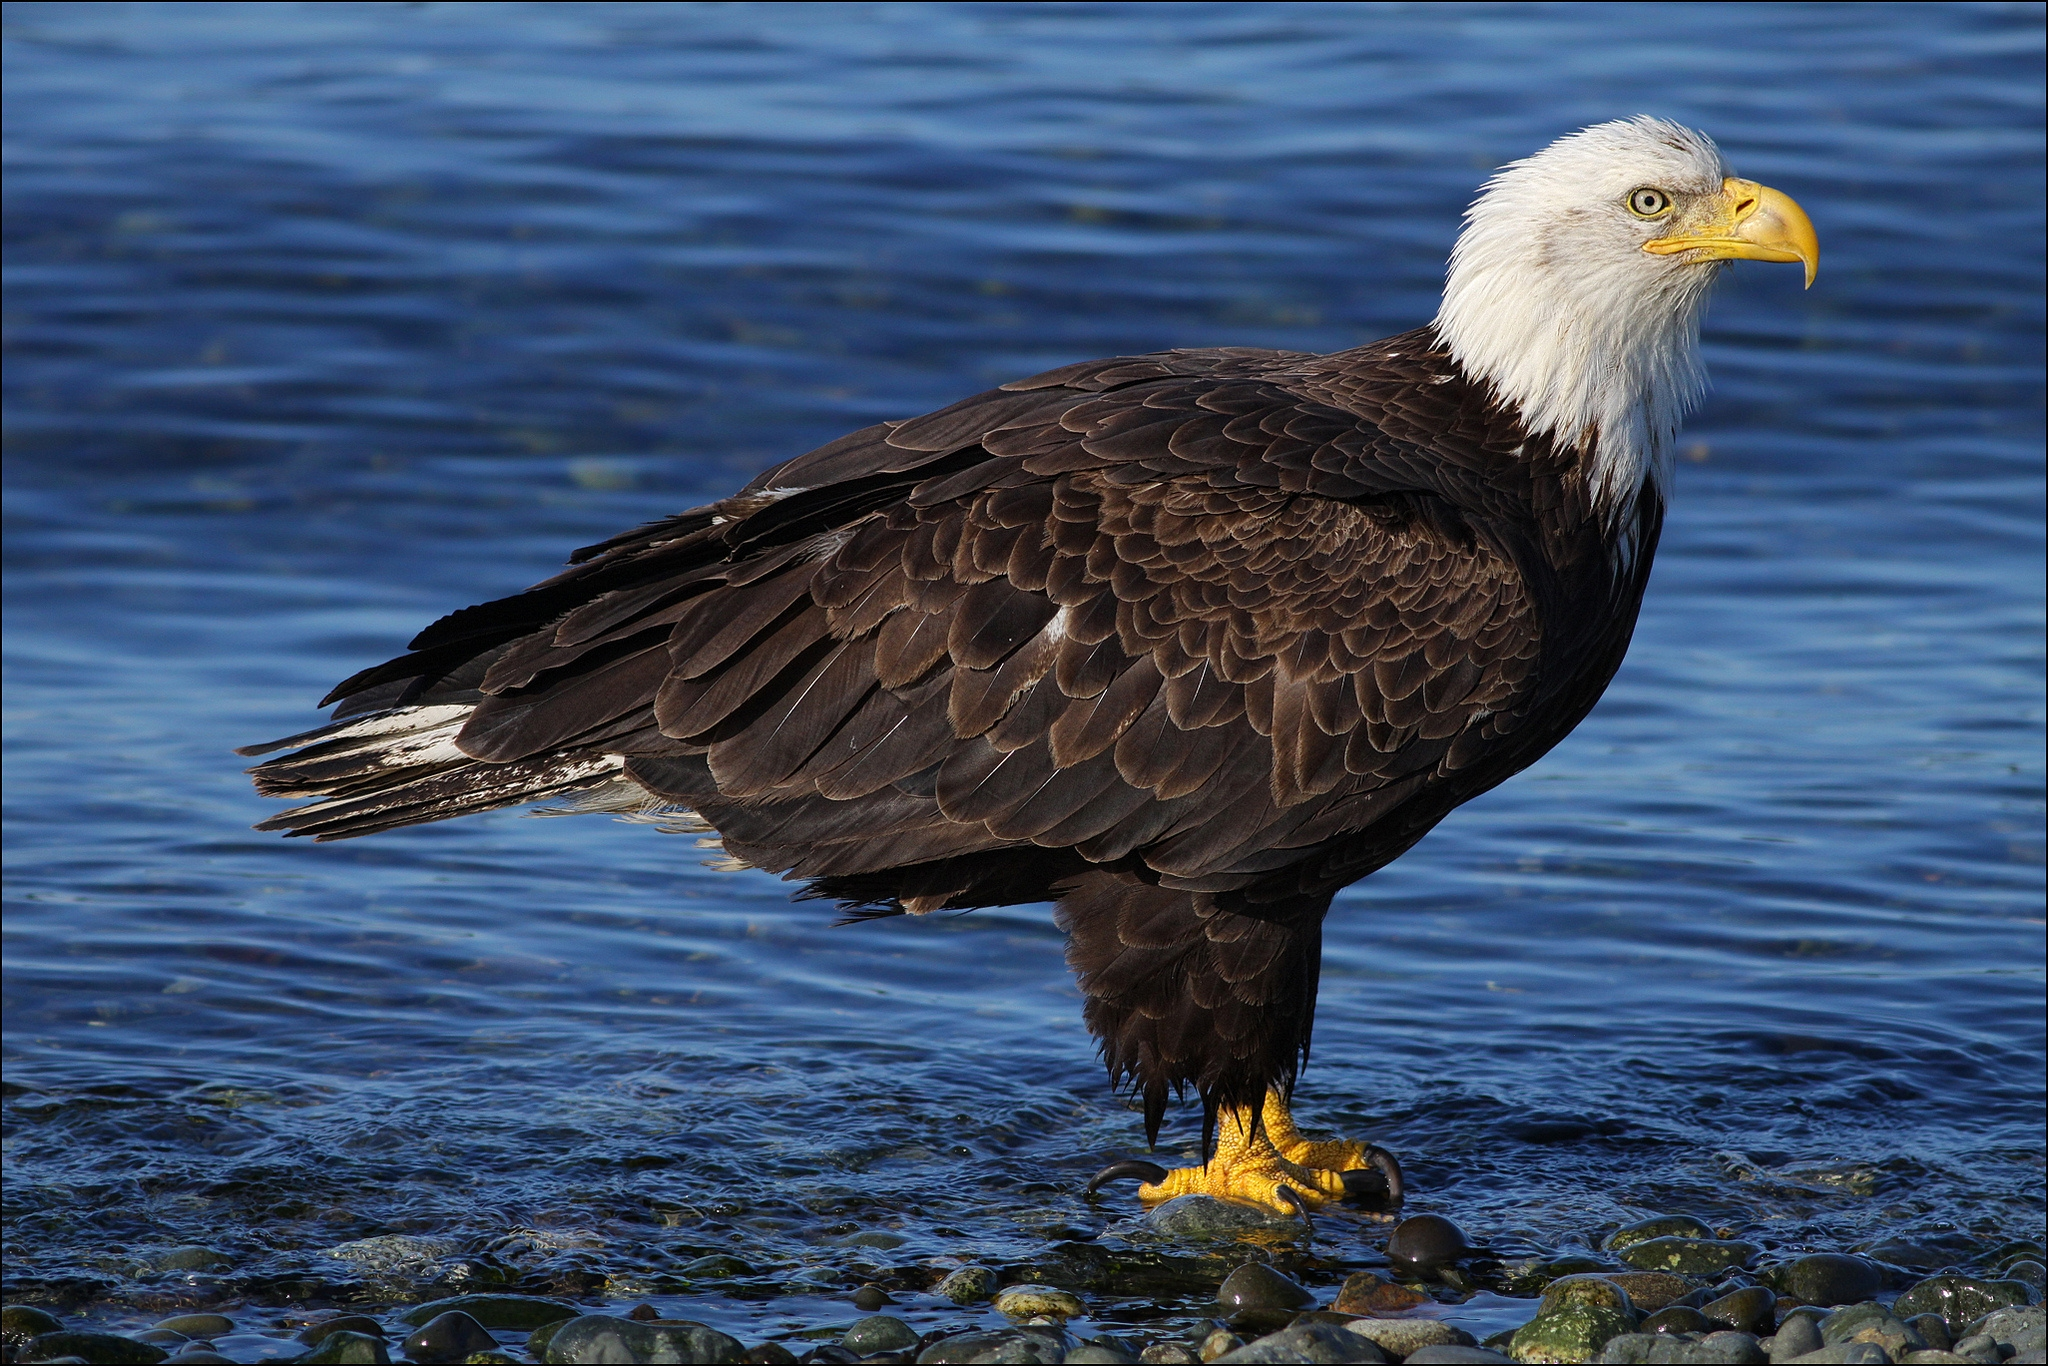 61497 download wallpaper Animals, Bald Eagle, White-Headed Eagle, Stones, Water screensavers and pictures for free